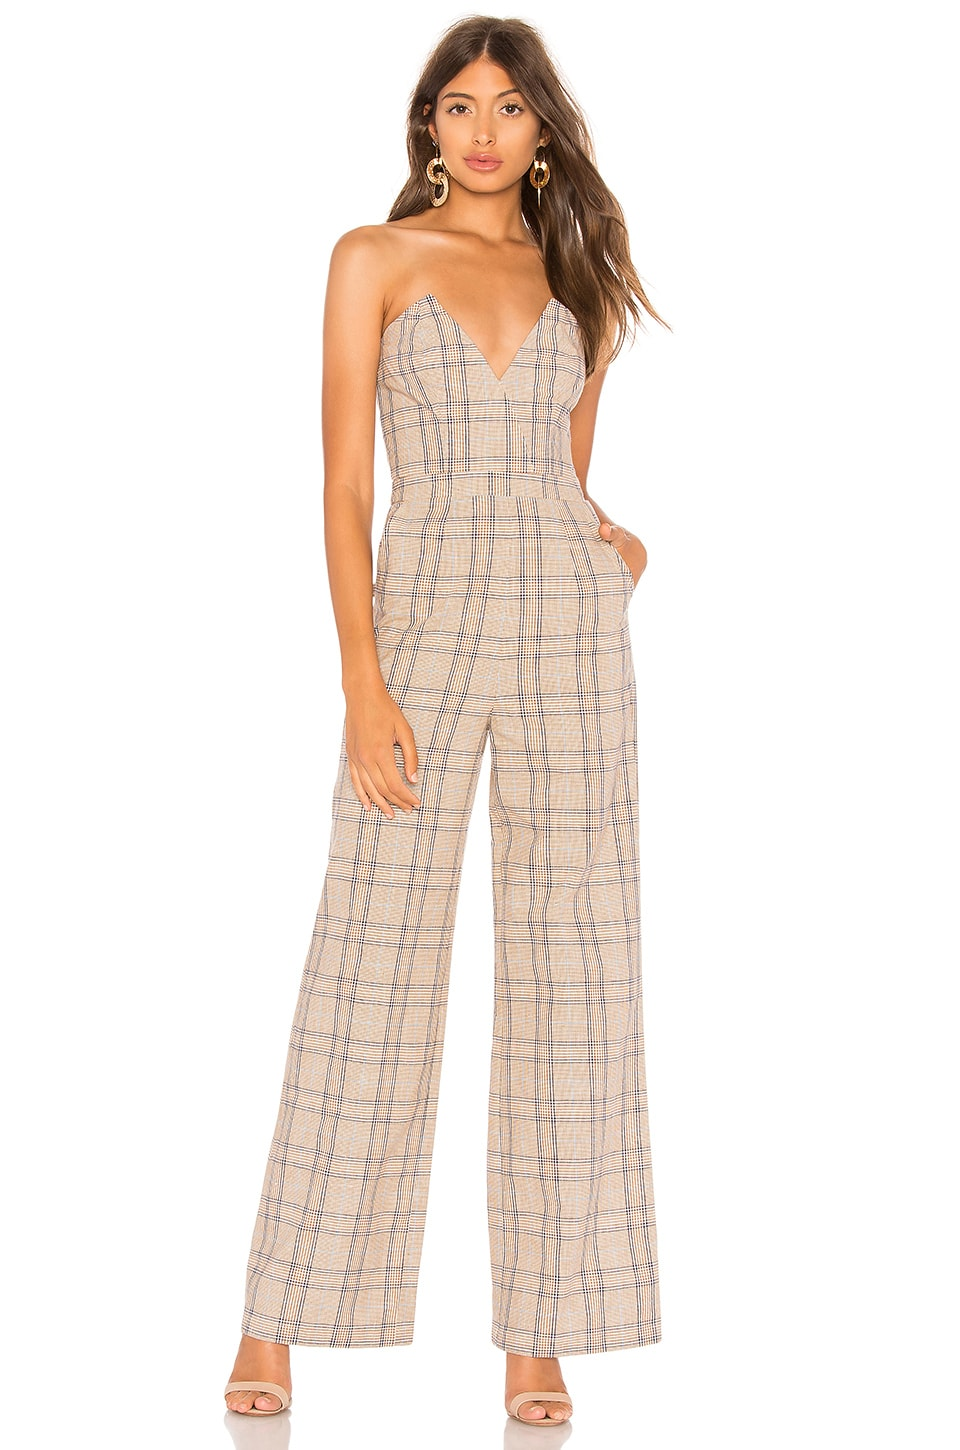 Lovers + Friends Grecia Jumpsuit in Walnut